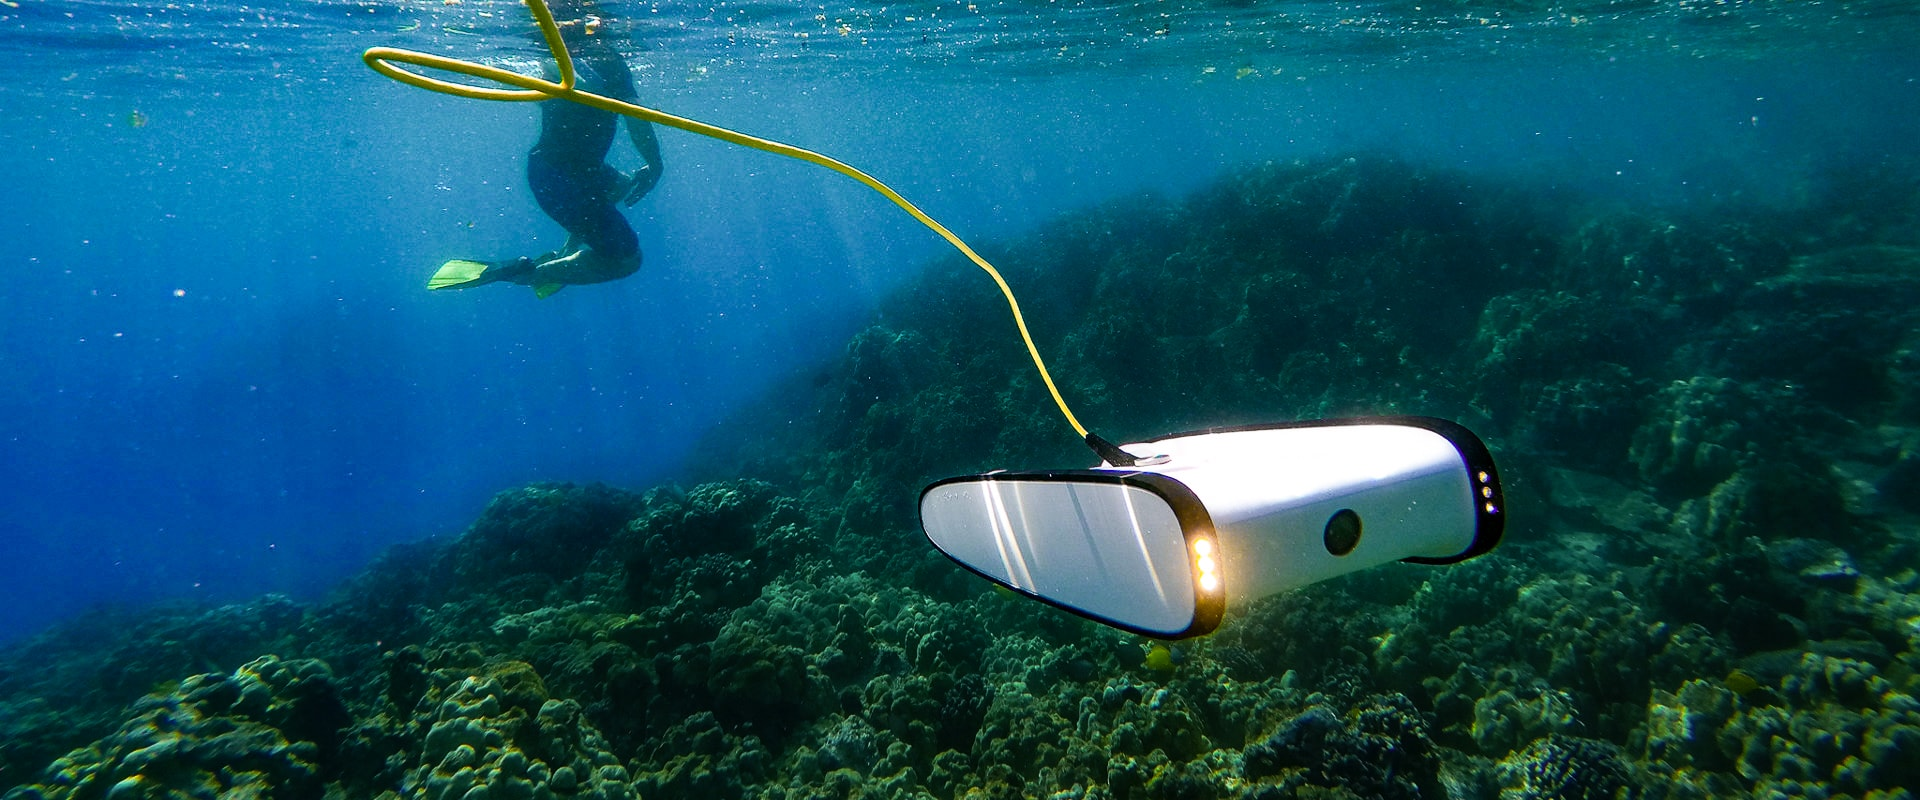 3 underwater drones that are taking the drone industry to new depths